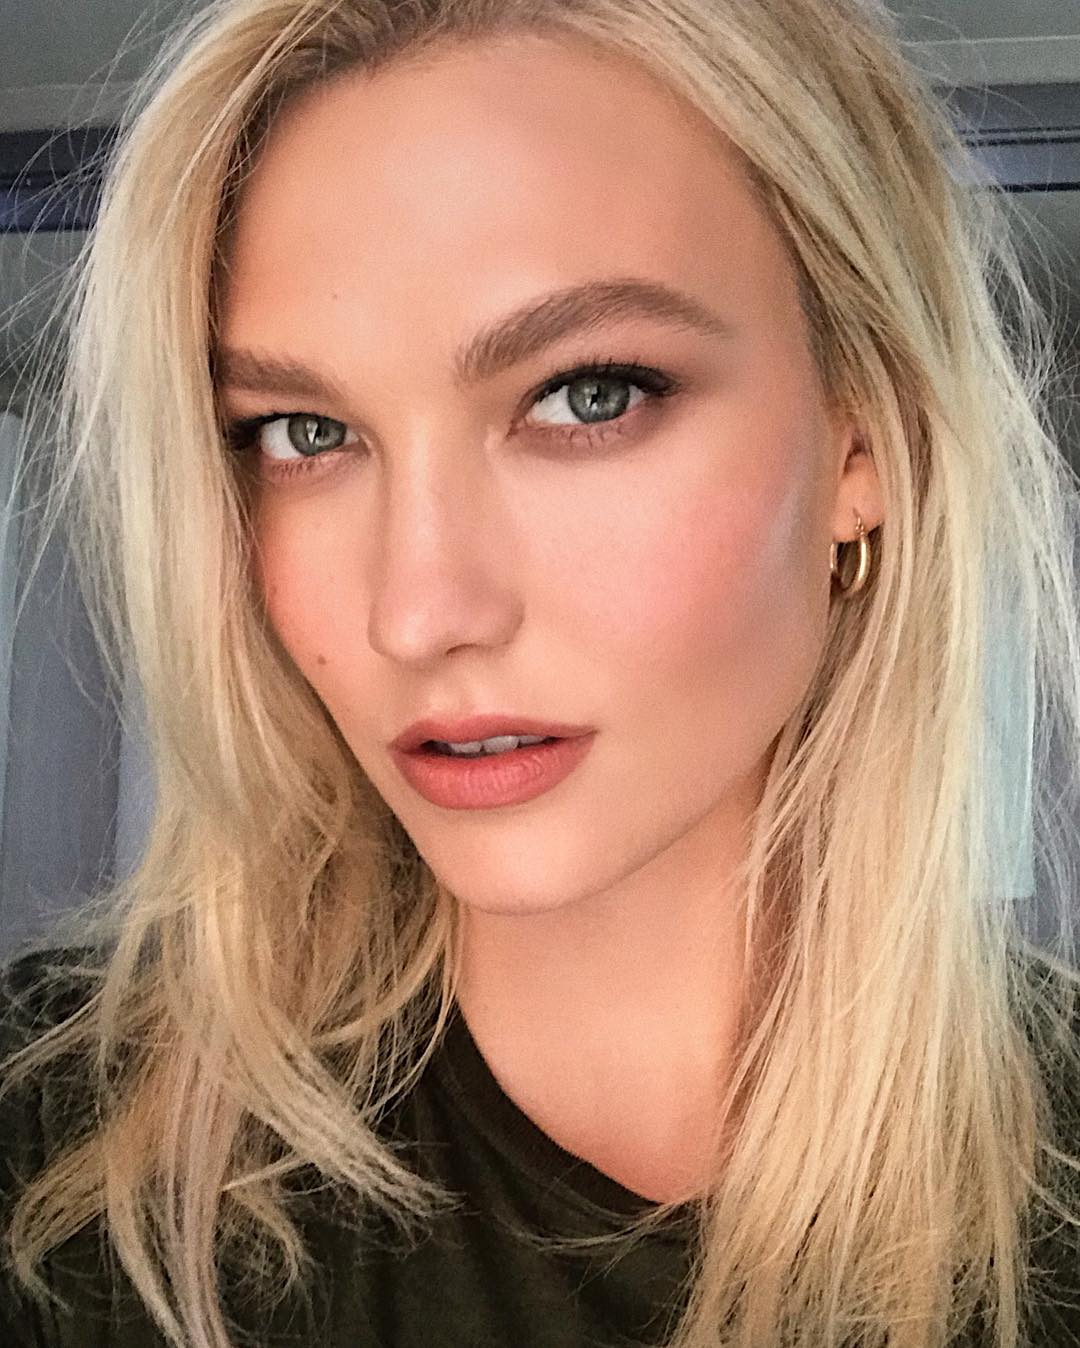 Karlie Kloss's Facialist Shares Her Best Skincare Advice